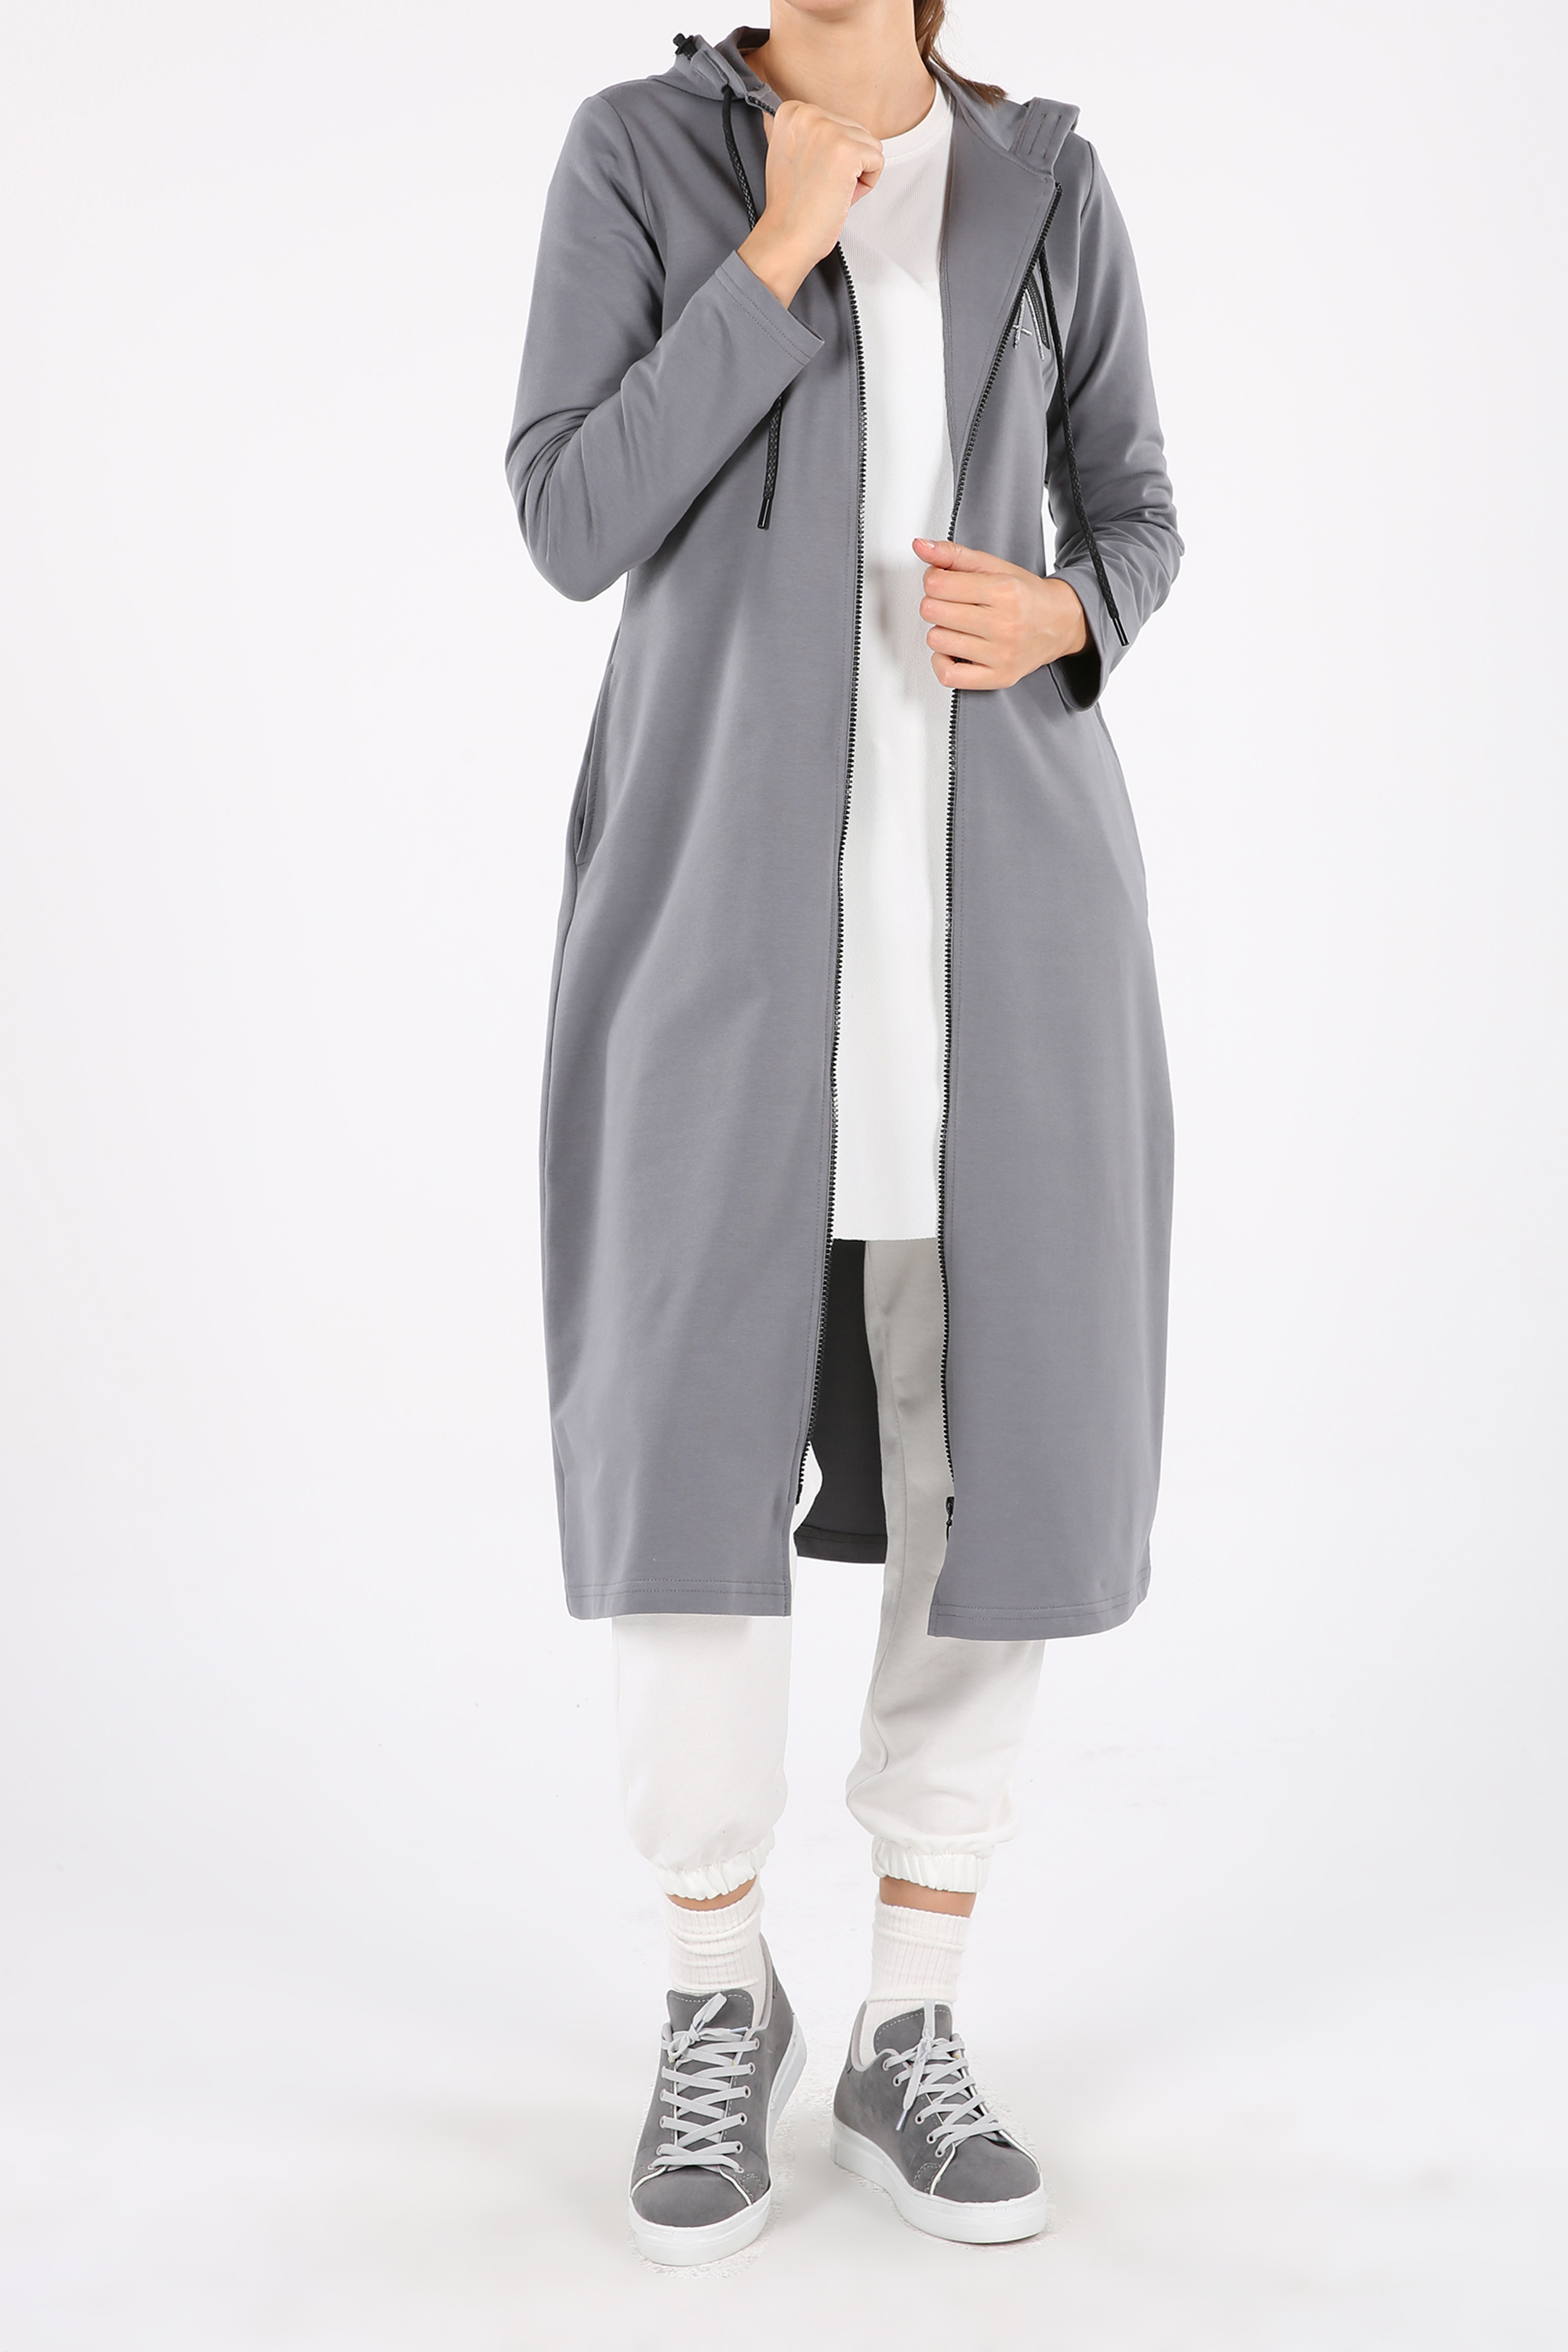 Embroidered Zippered Pocket Hooded Cardigan